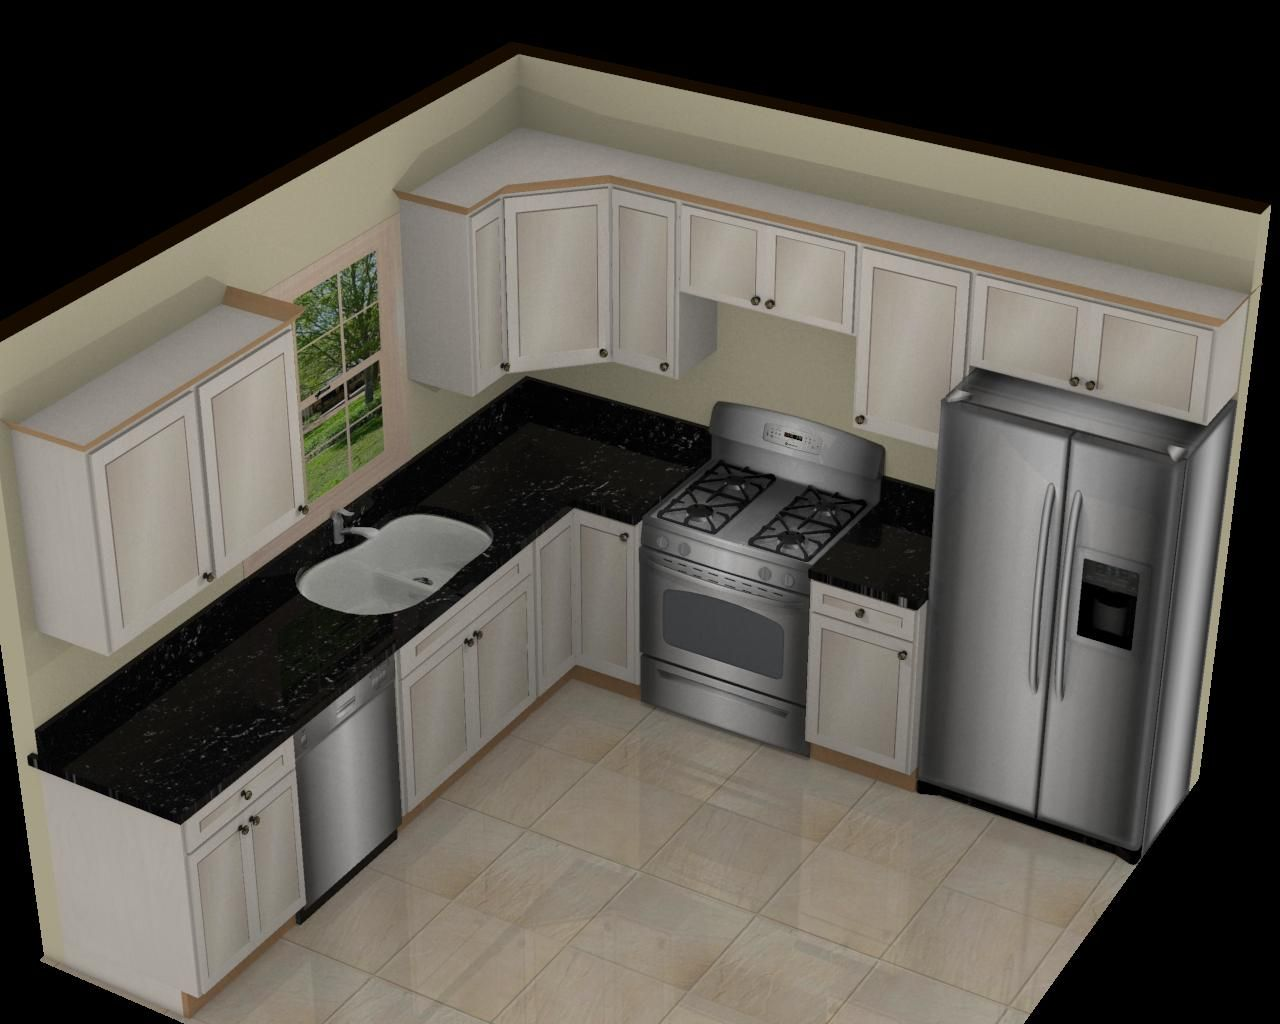 Small Kitchen Design Layout Ideas small kitchen design layout 10x10 small kitchen layouts ideas smlf Find This Pin And More On Kitchen 10 10 L Shaped Kitchen Designs